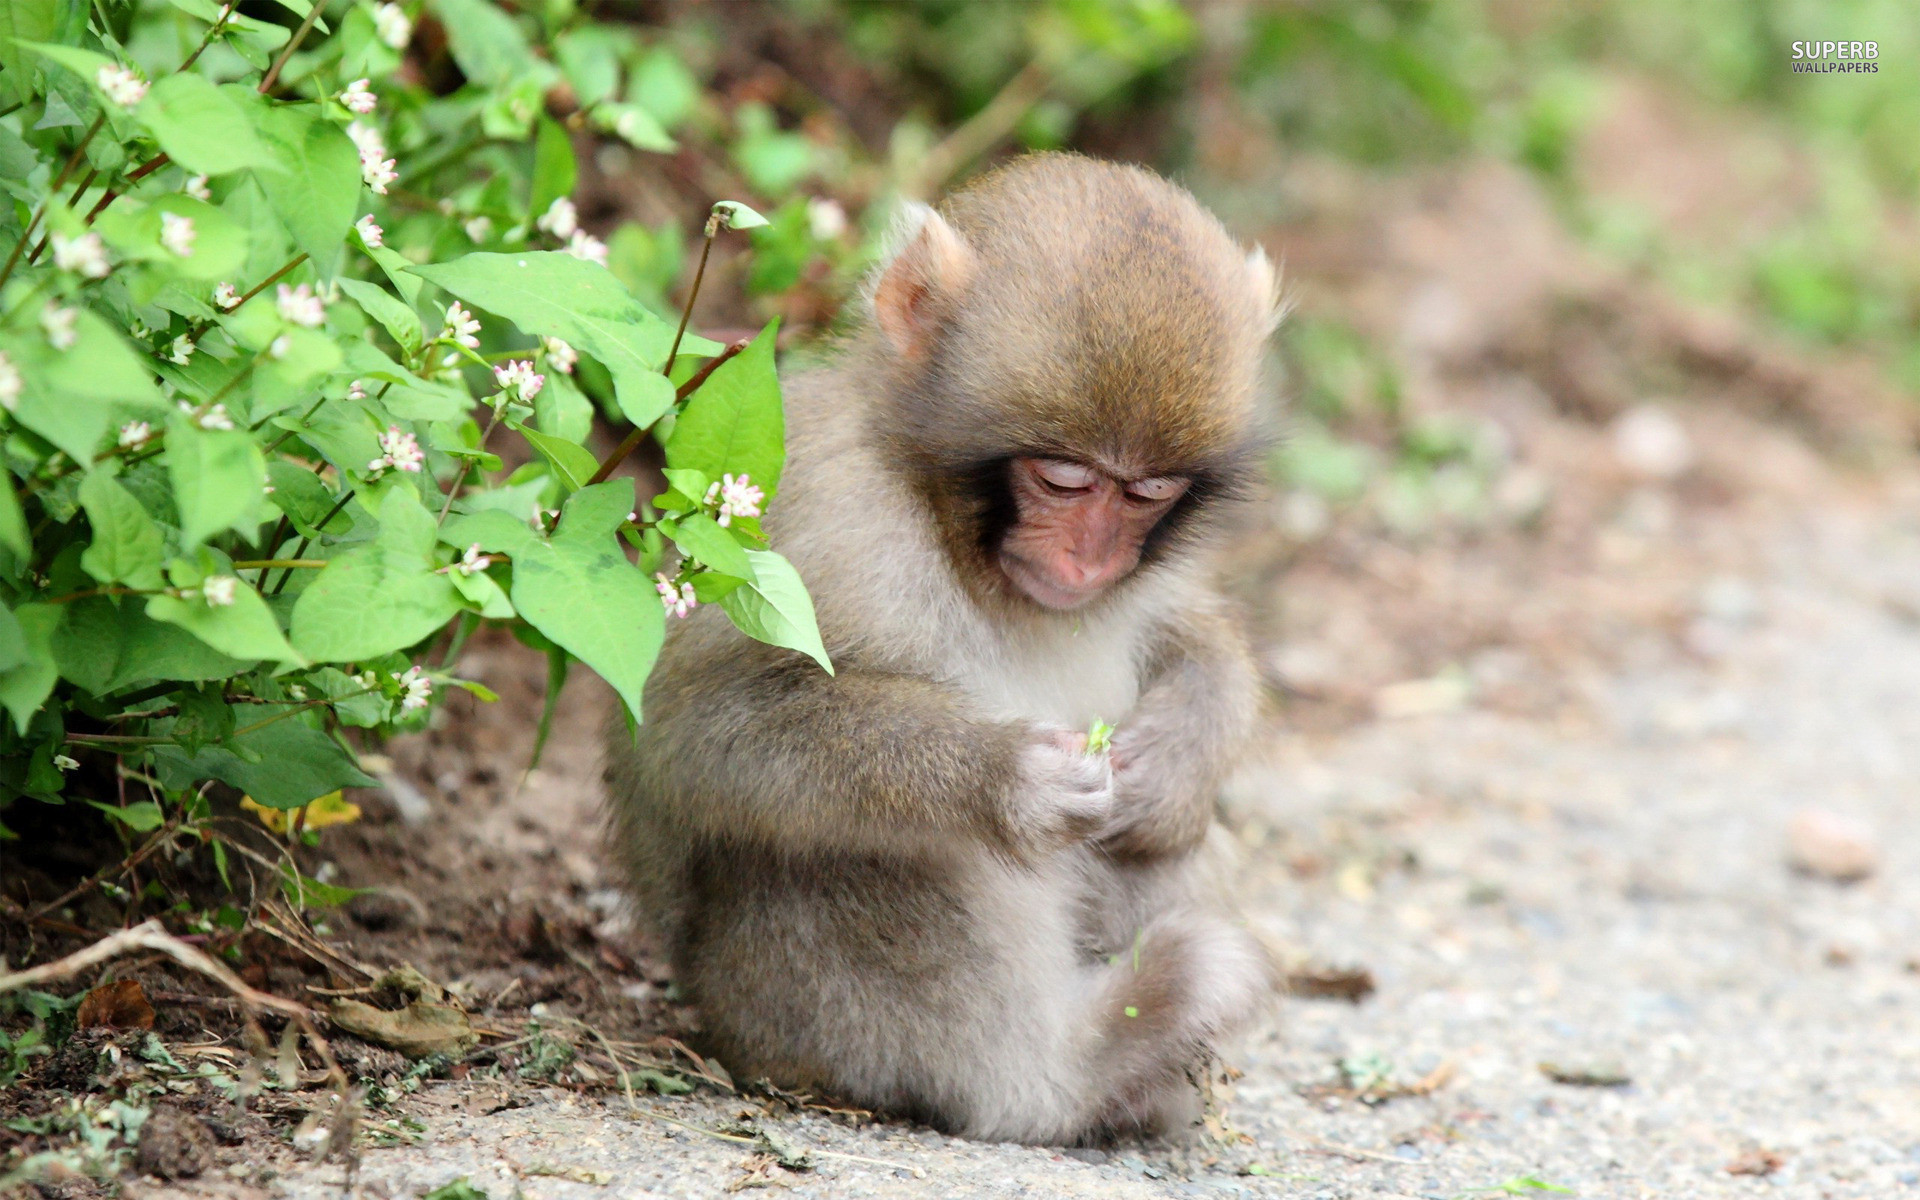 1920x1200 High Resolution Monkey Cute Baby Wallpaper Full Size .